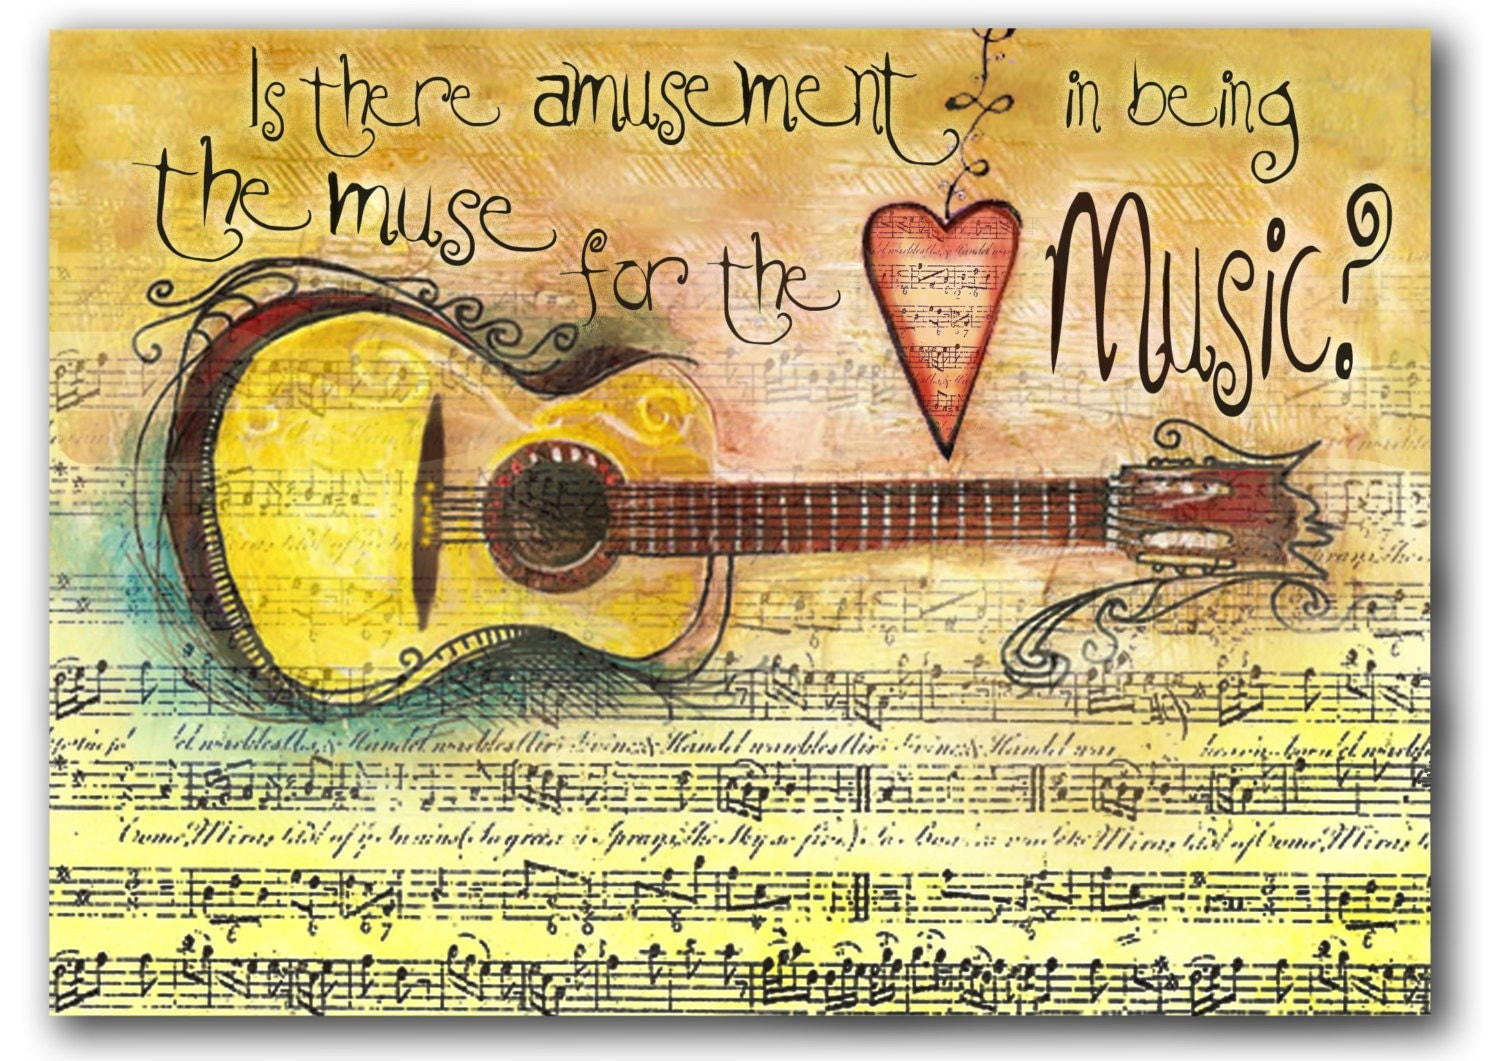 5 X 7 Guitar Muse for the Music -  Giclee Print in Colors of Yellow, Tan and Brown - christinafajardoart